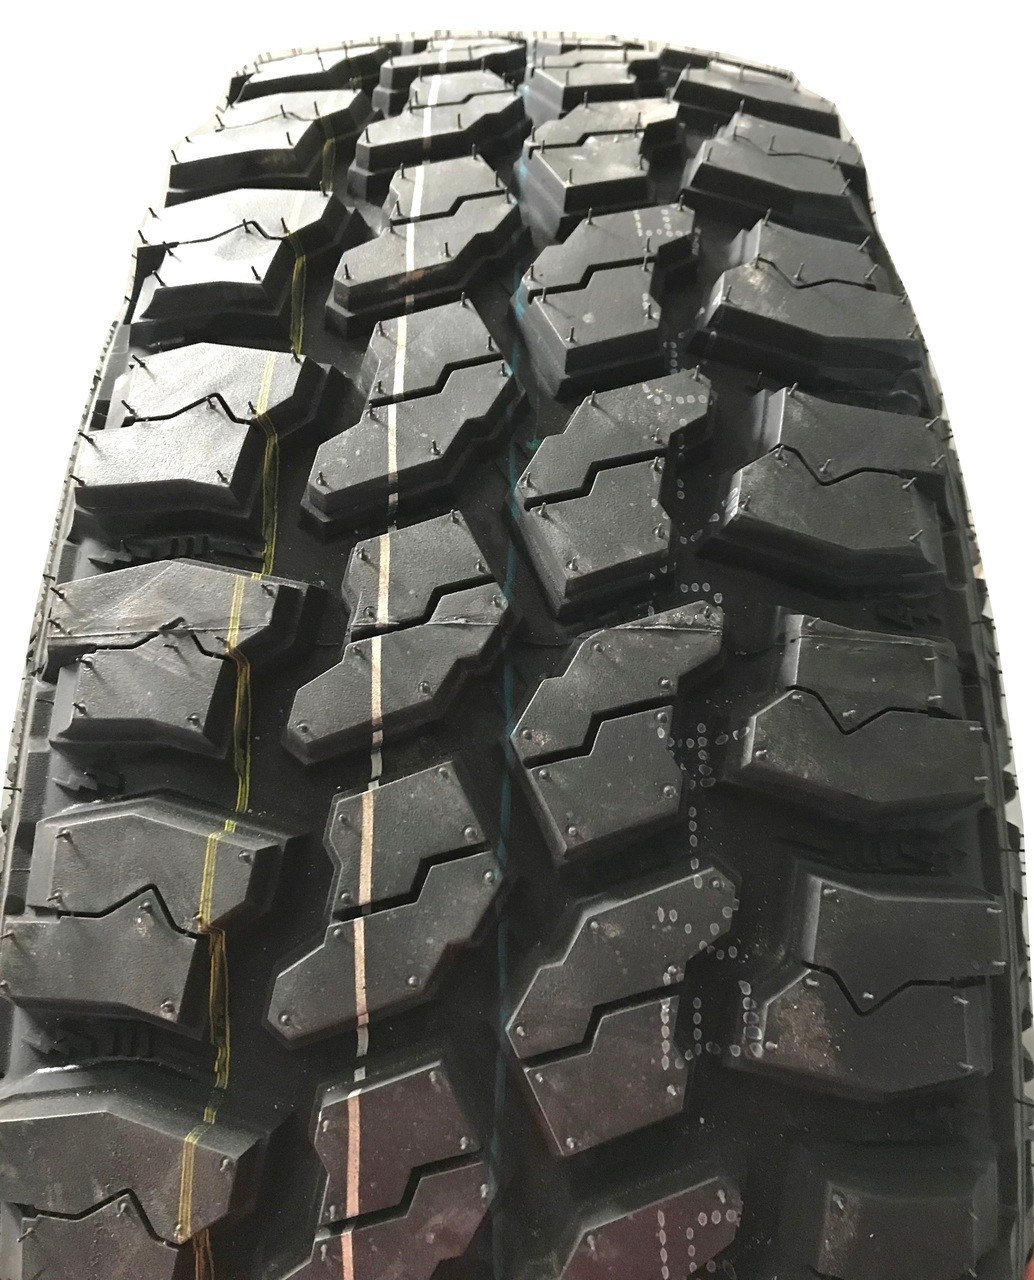 New Tire 37 13.50 22 Mud Claw Extreme MT 12 Ply LT37x13.50R22